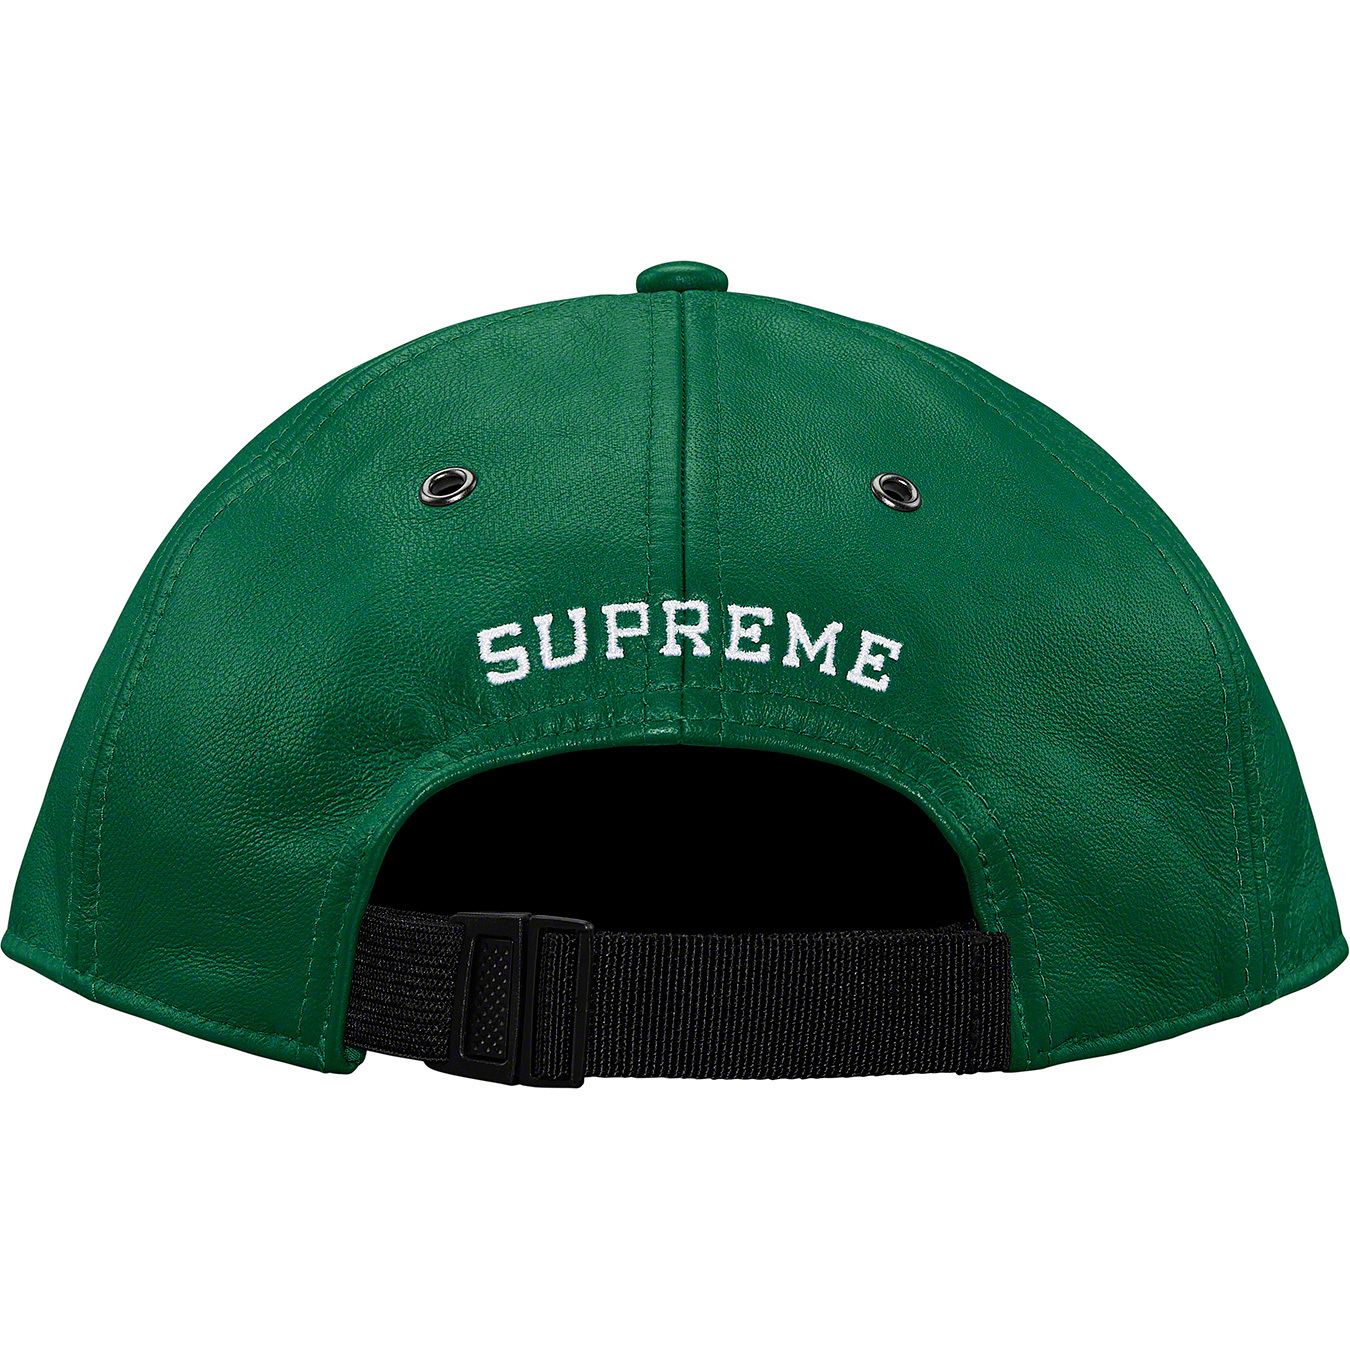 supreme-the-north-face-leather-6-panel-hat-2018aw-release-20181020-week9